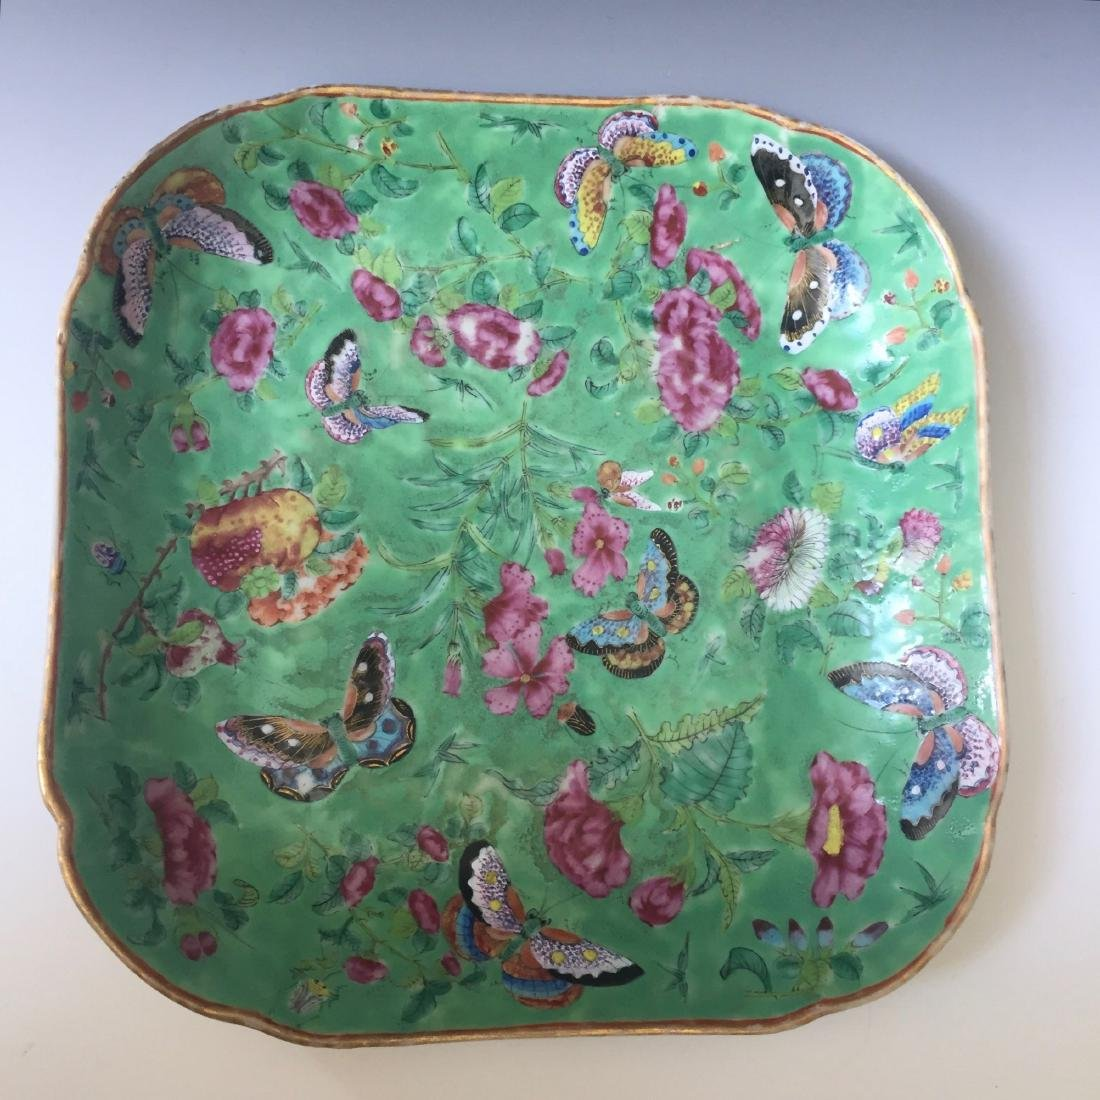 A FINE CHINESE ANTIQUE FAMILL ROSE PORCELAIN DISH,19C